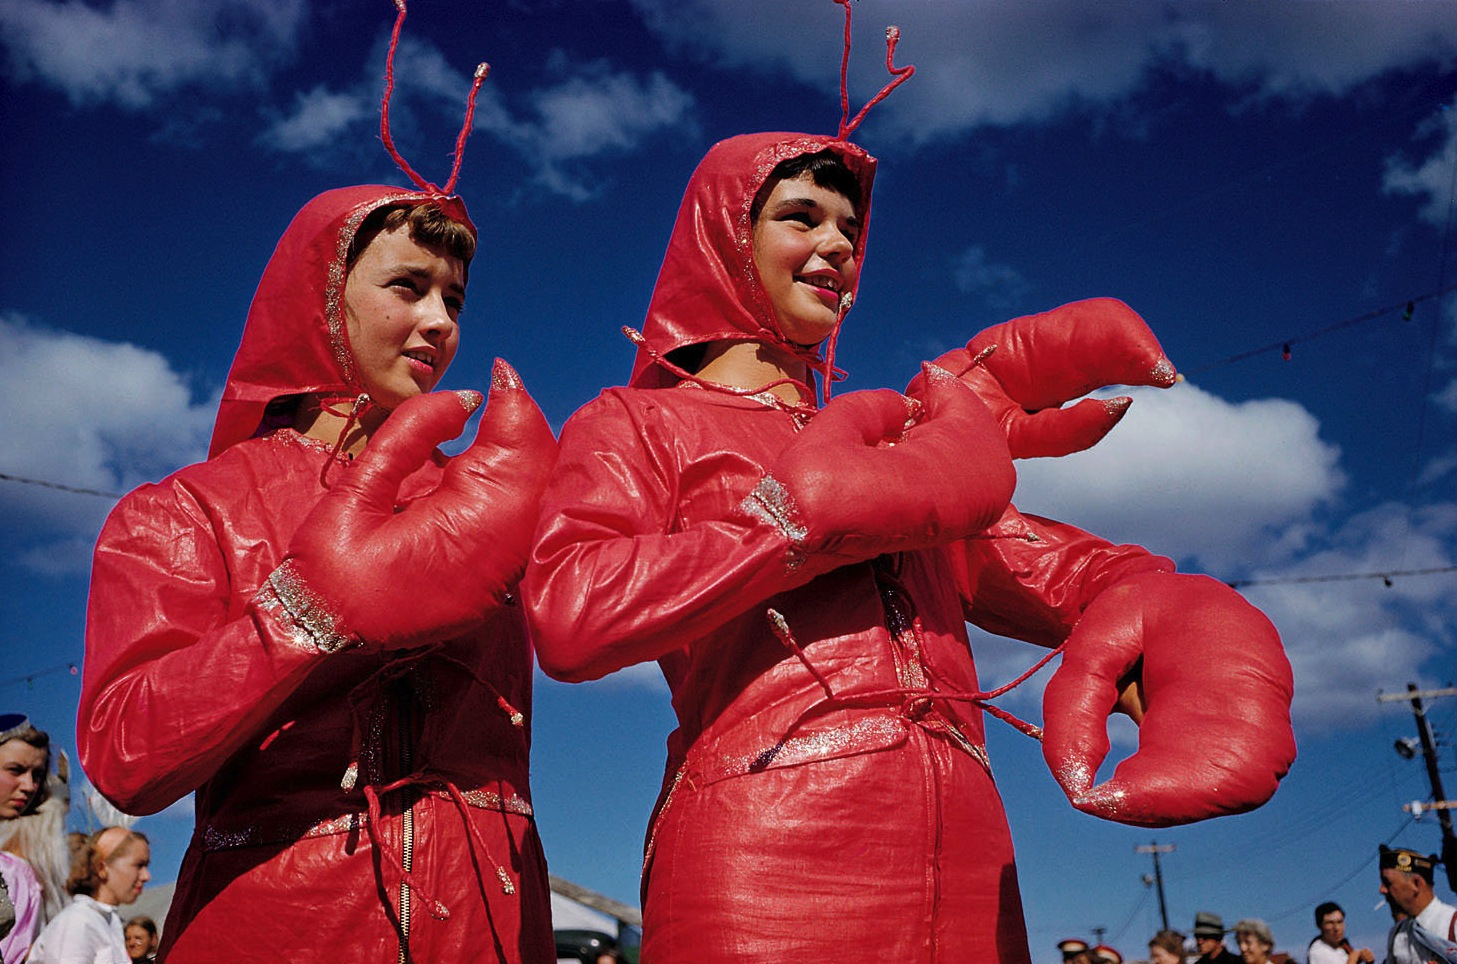 Rock lobster a quirky luis marden portrait from the national geographic archives shows lobsterettes from a rockland maine festival in 1952 8774ce28b6ef4a4b